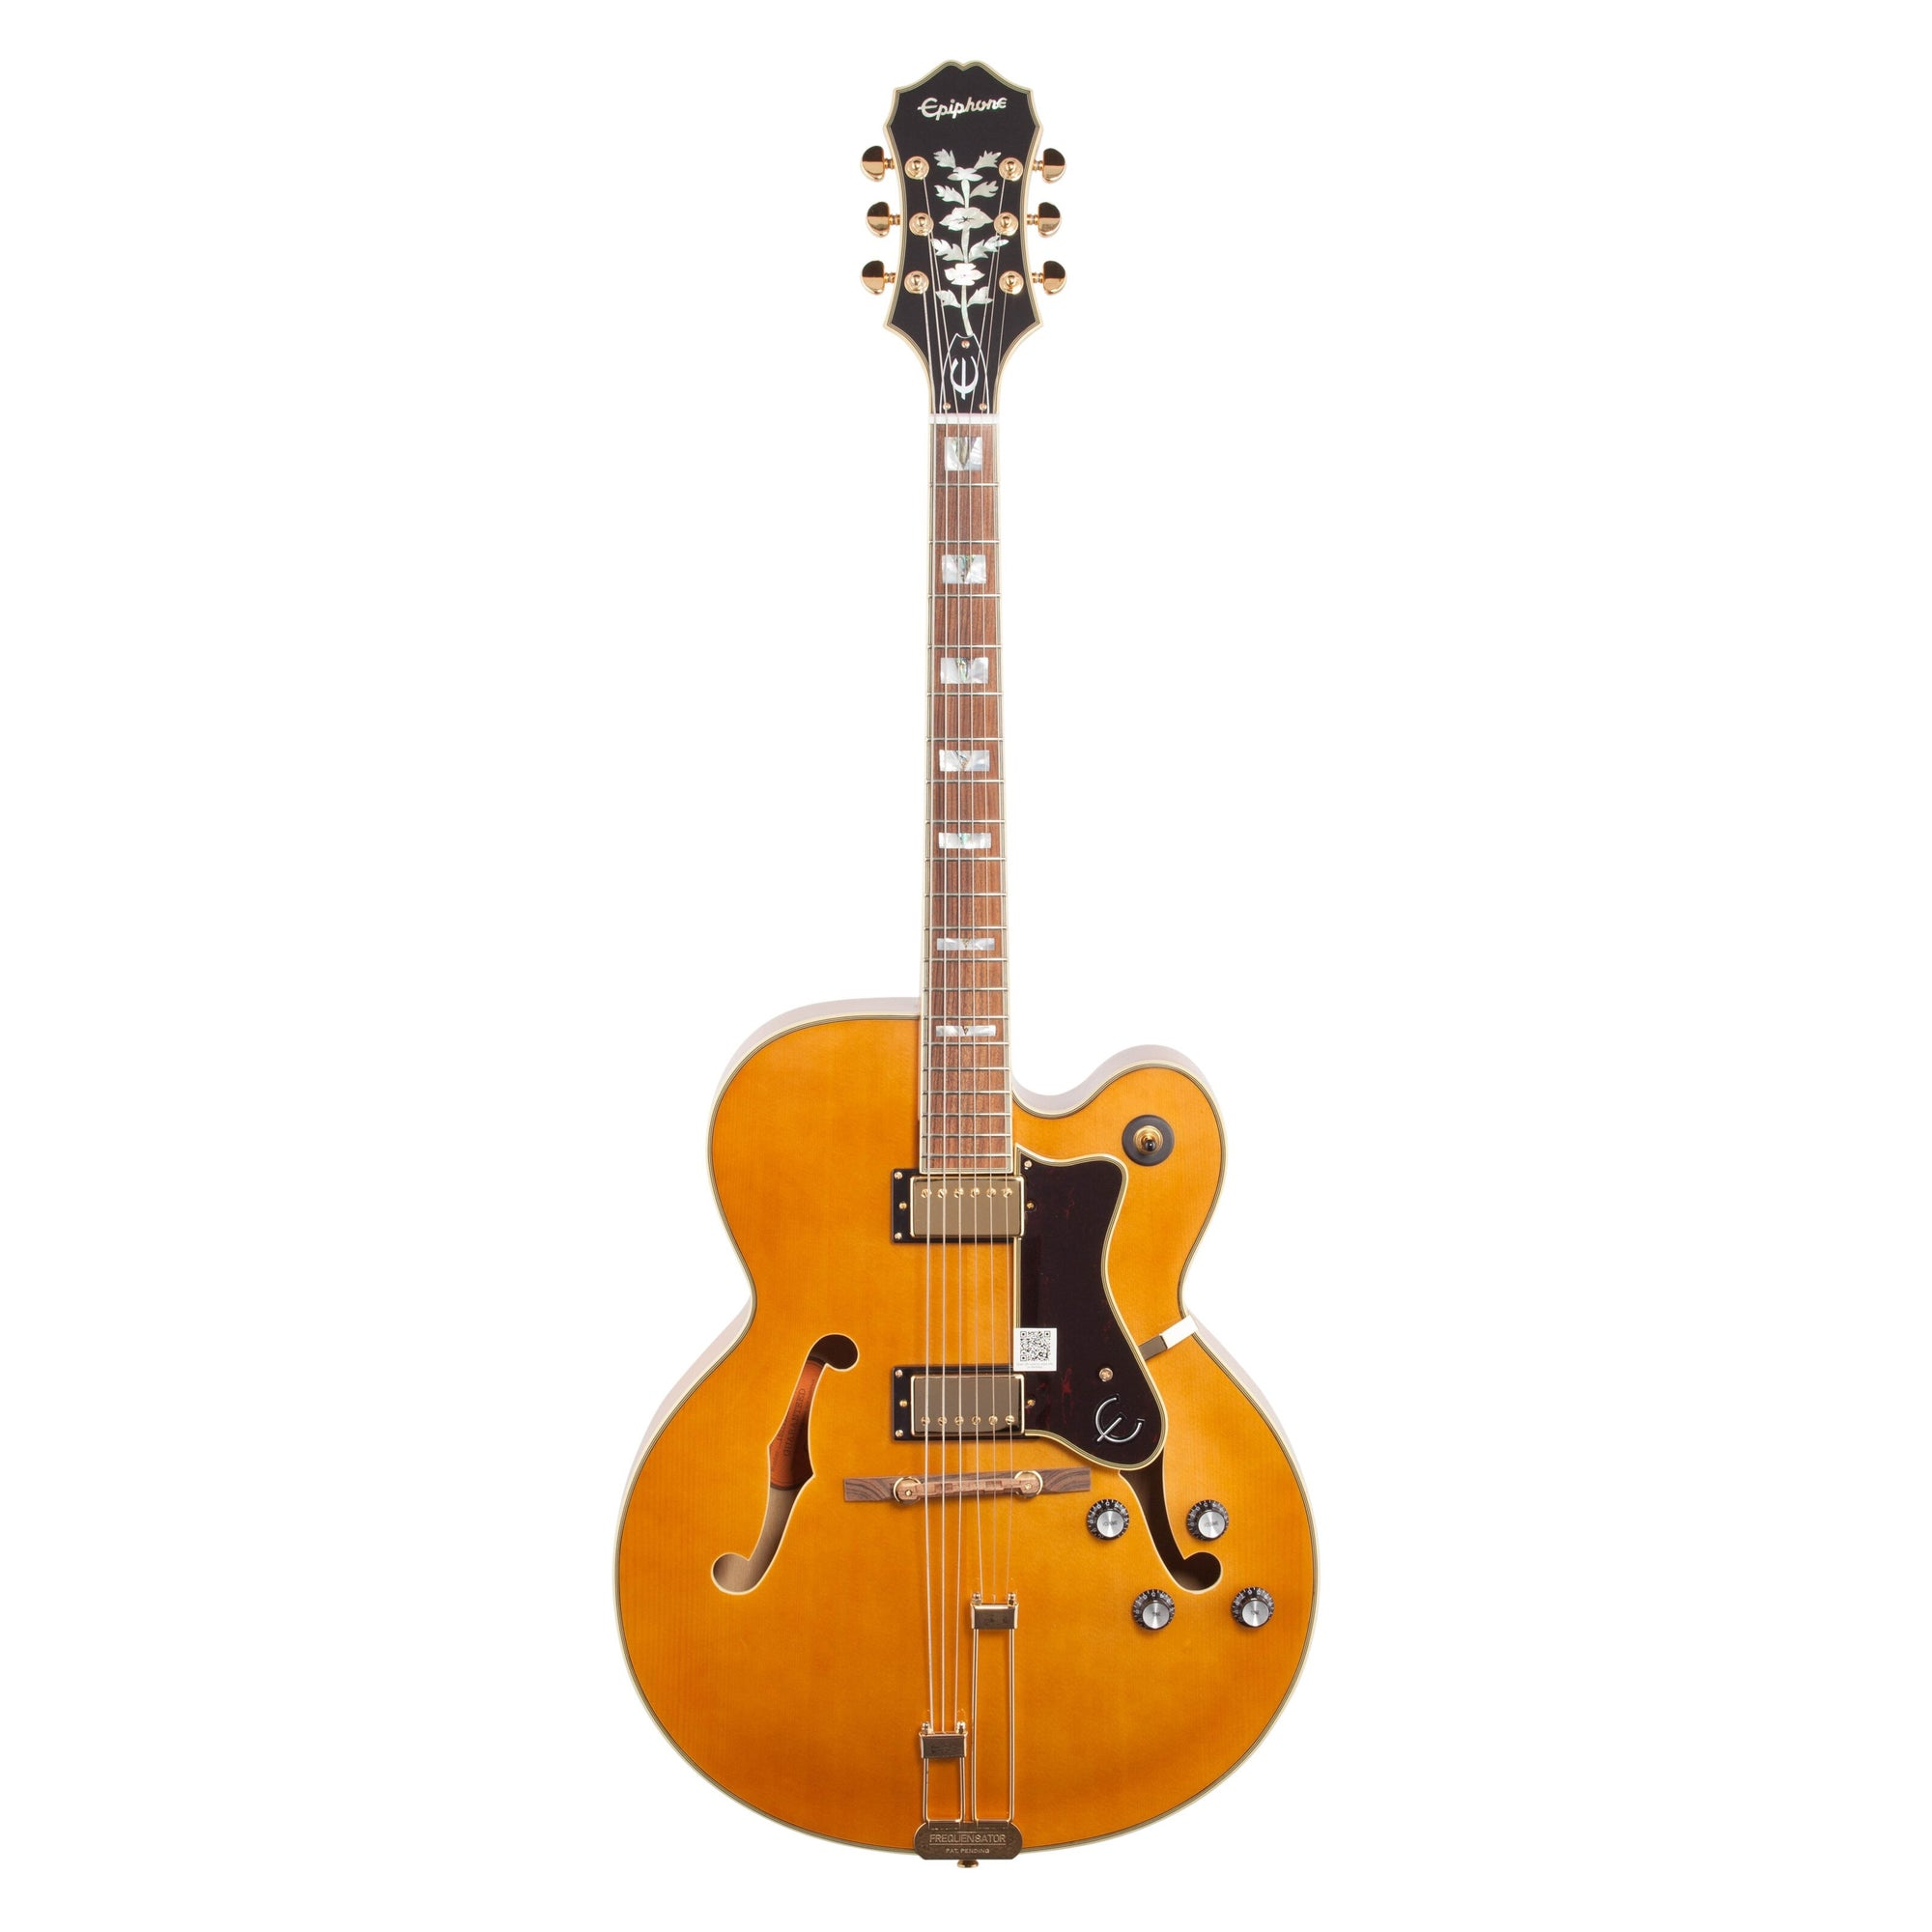 Epiphone Broadway Hollowbody Electric Guitar, Vintage Natural